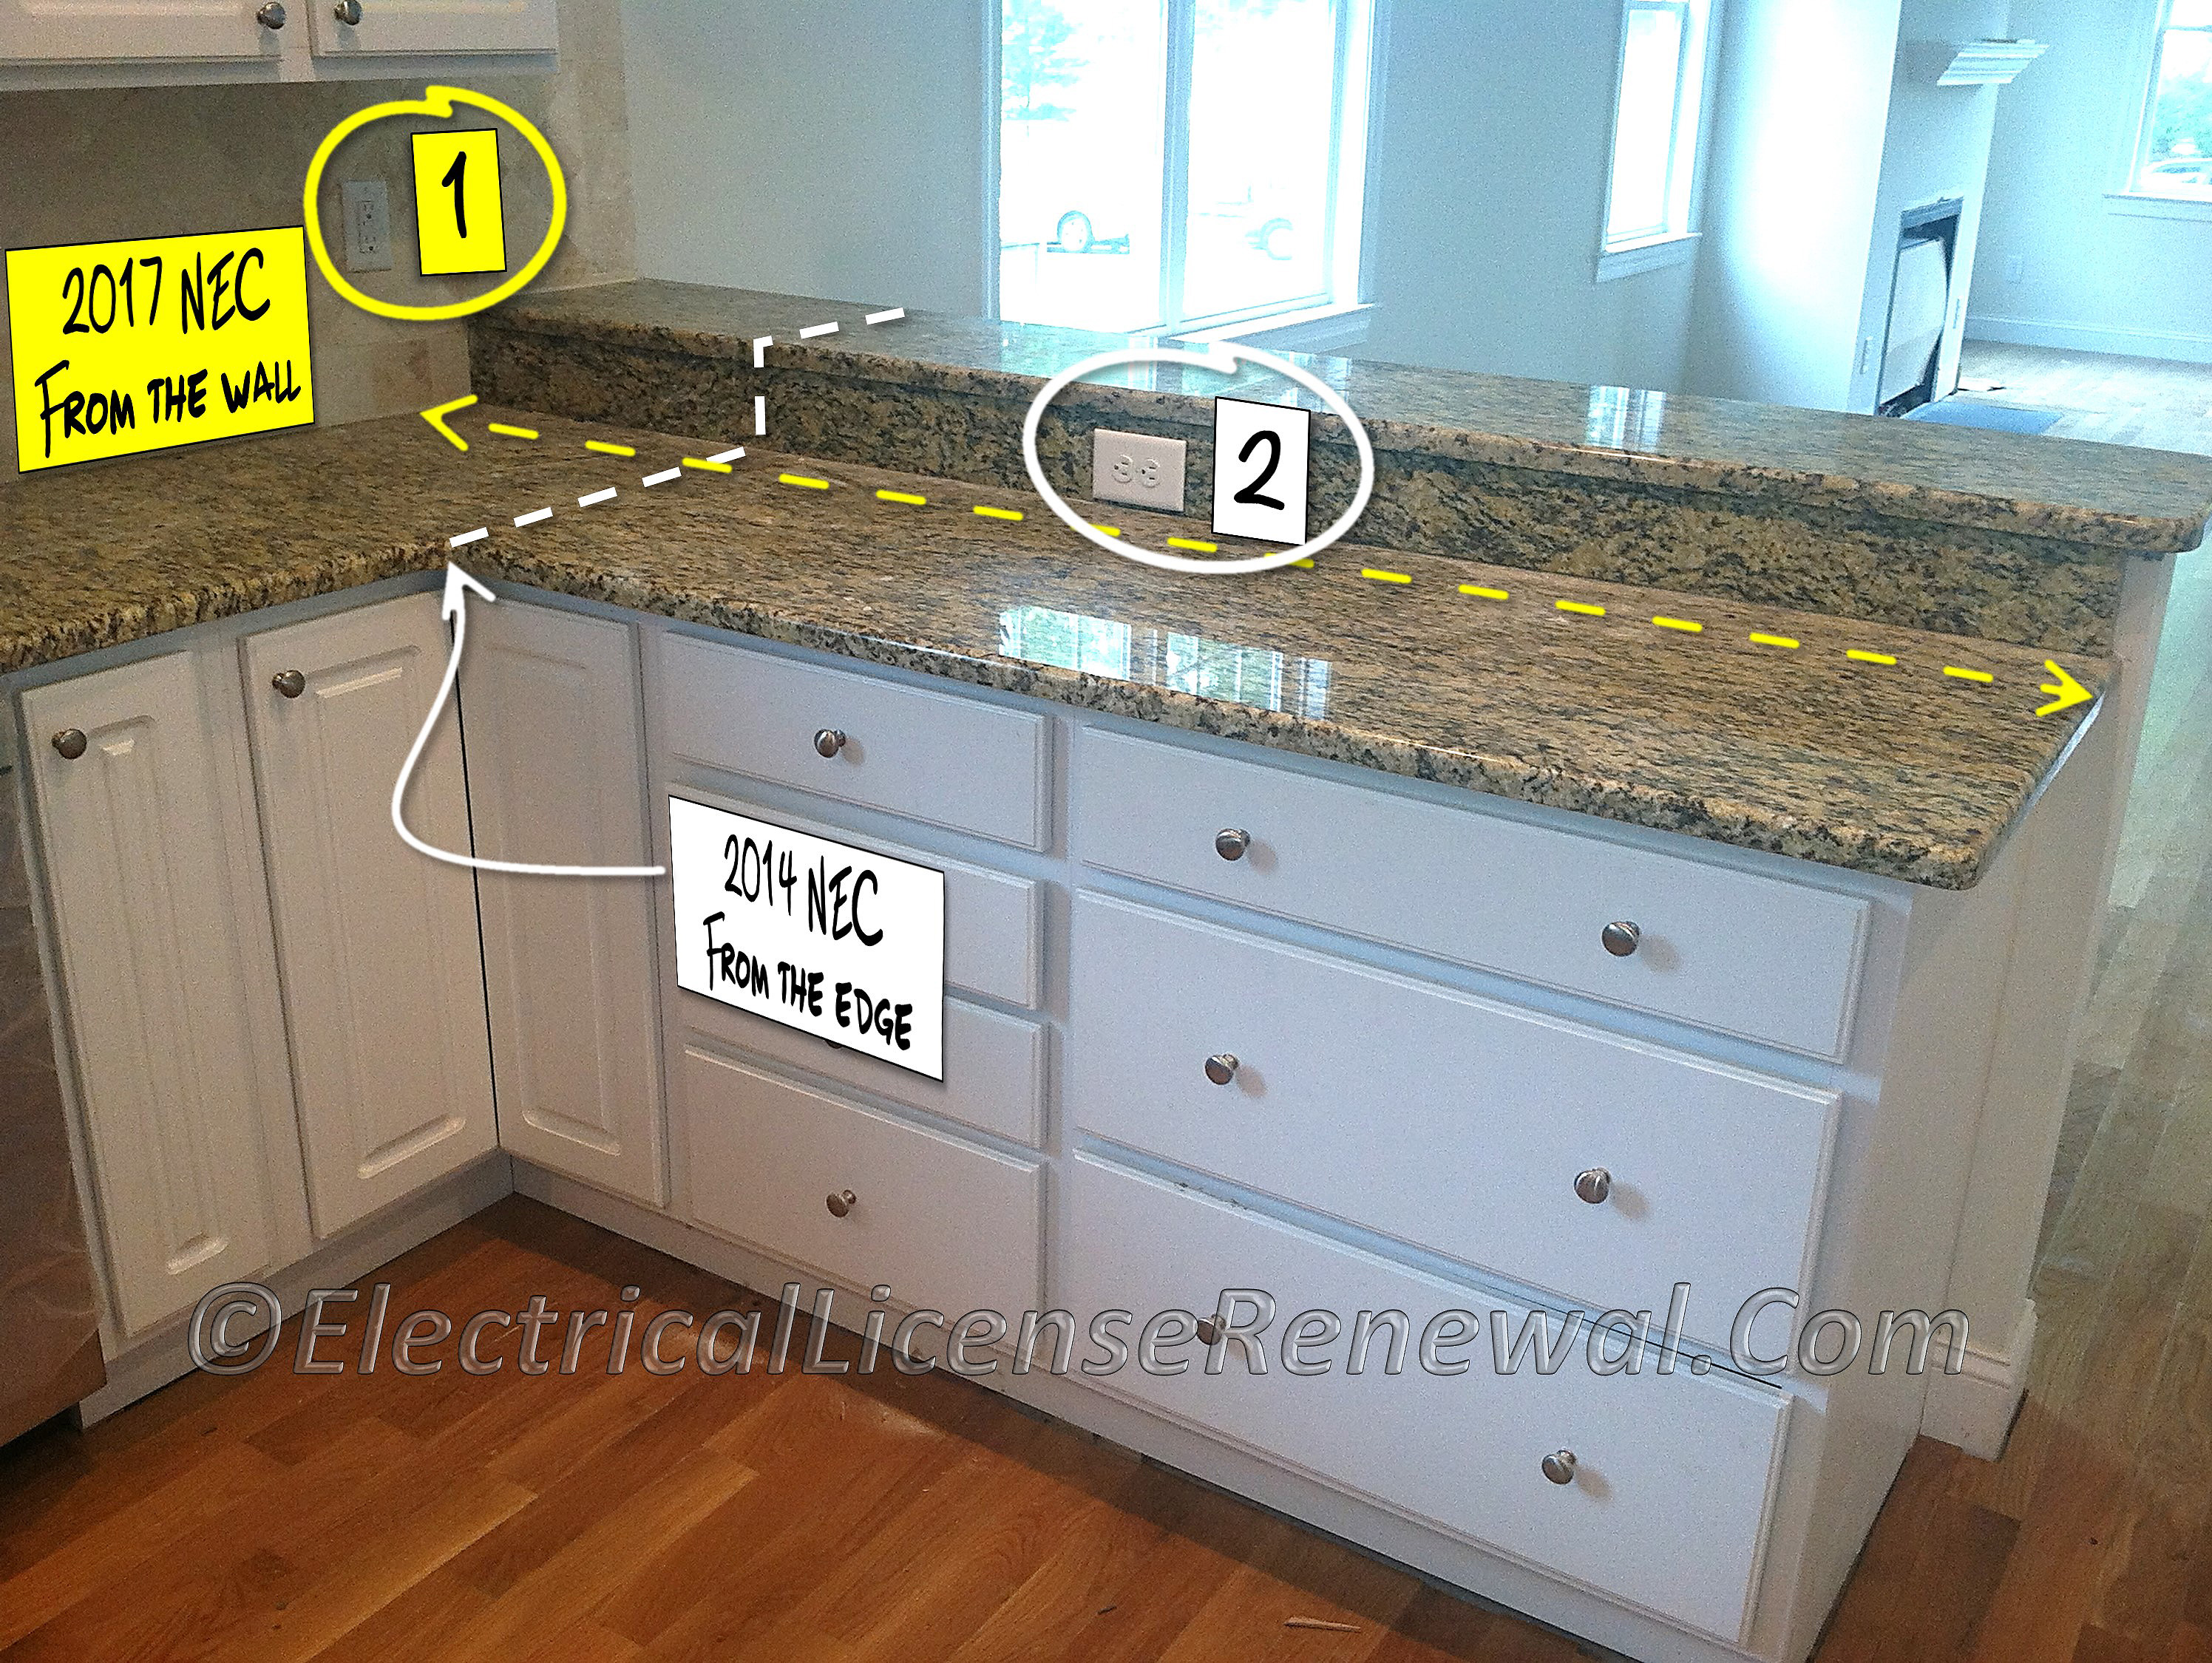 tips hgtv storage kitchen and ergonomic smart the kitchens design for countertop rooms outlets countertops seating